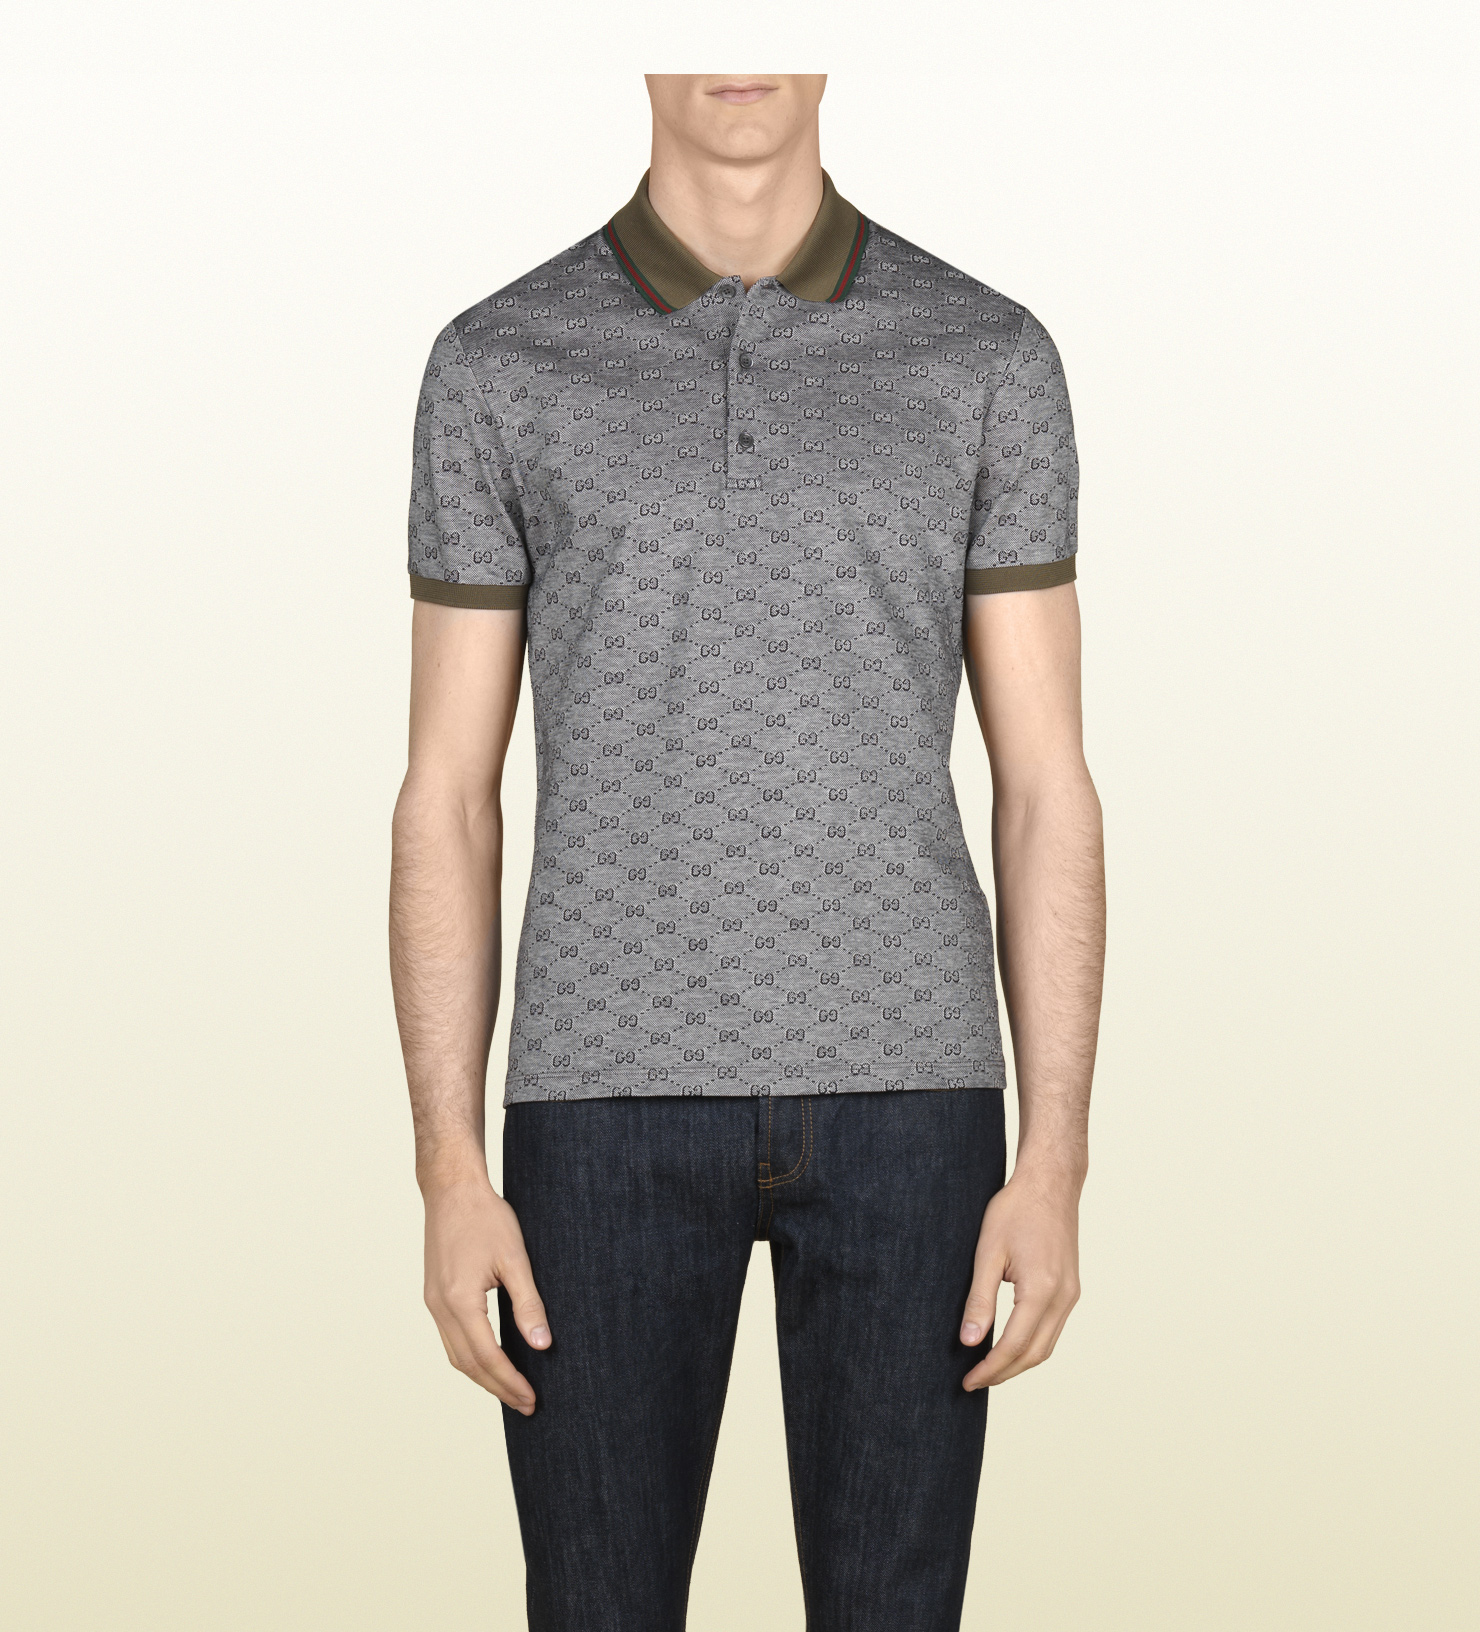 18b8f24a3c9c Gucci Piqué Short Sleeve Polo in Gray for Men - Lyst